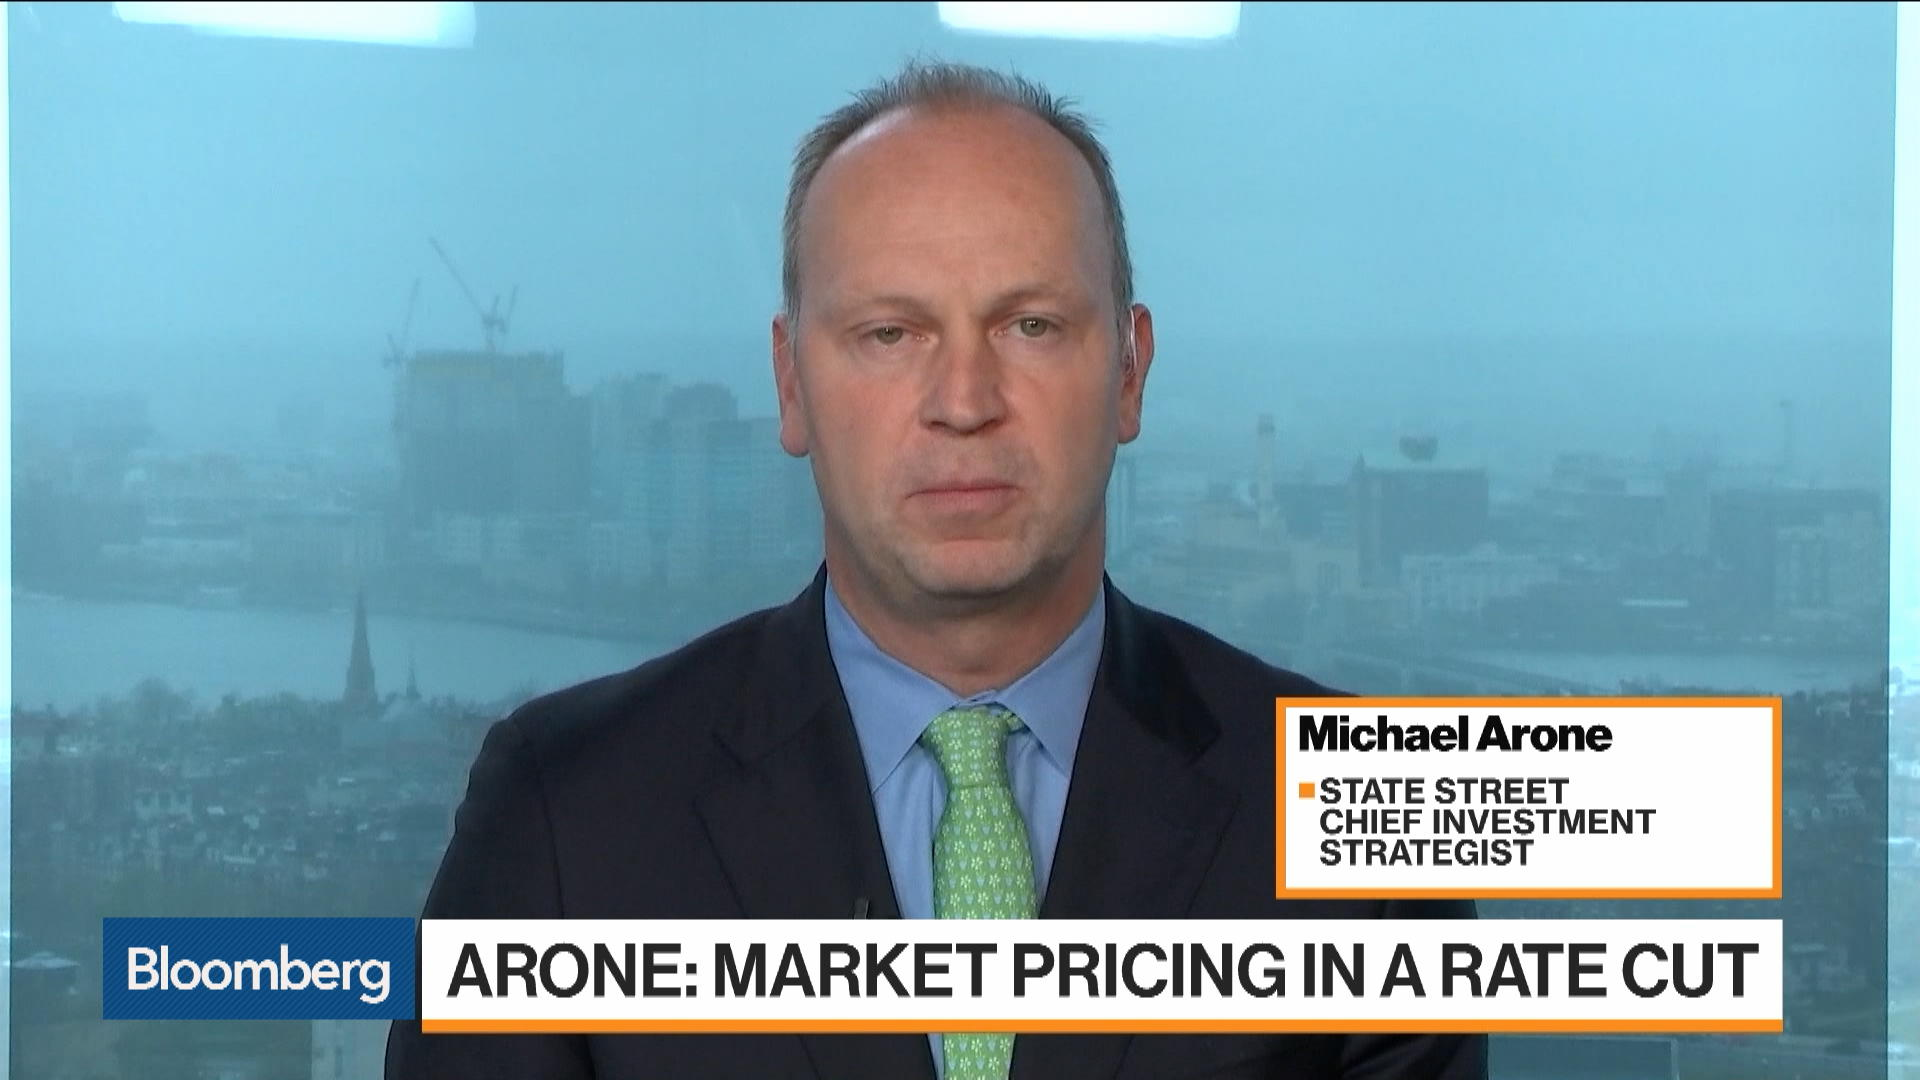 Stocks Are a 'Whisker Away' From All-Time Highs, State Street's Arone Says